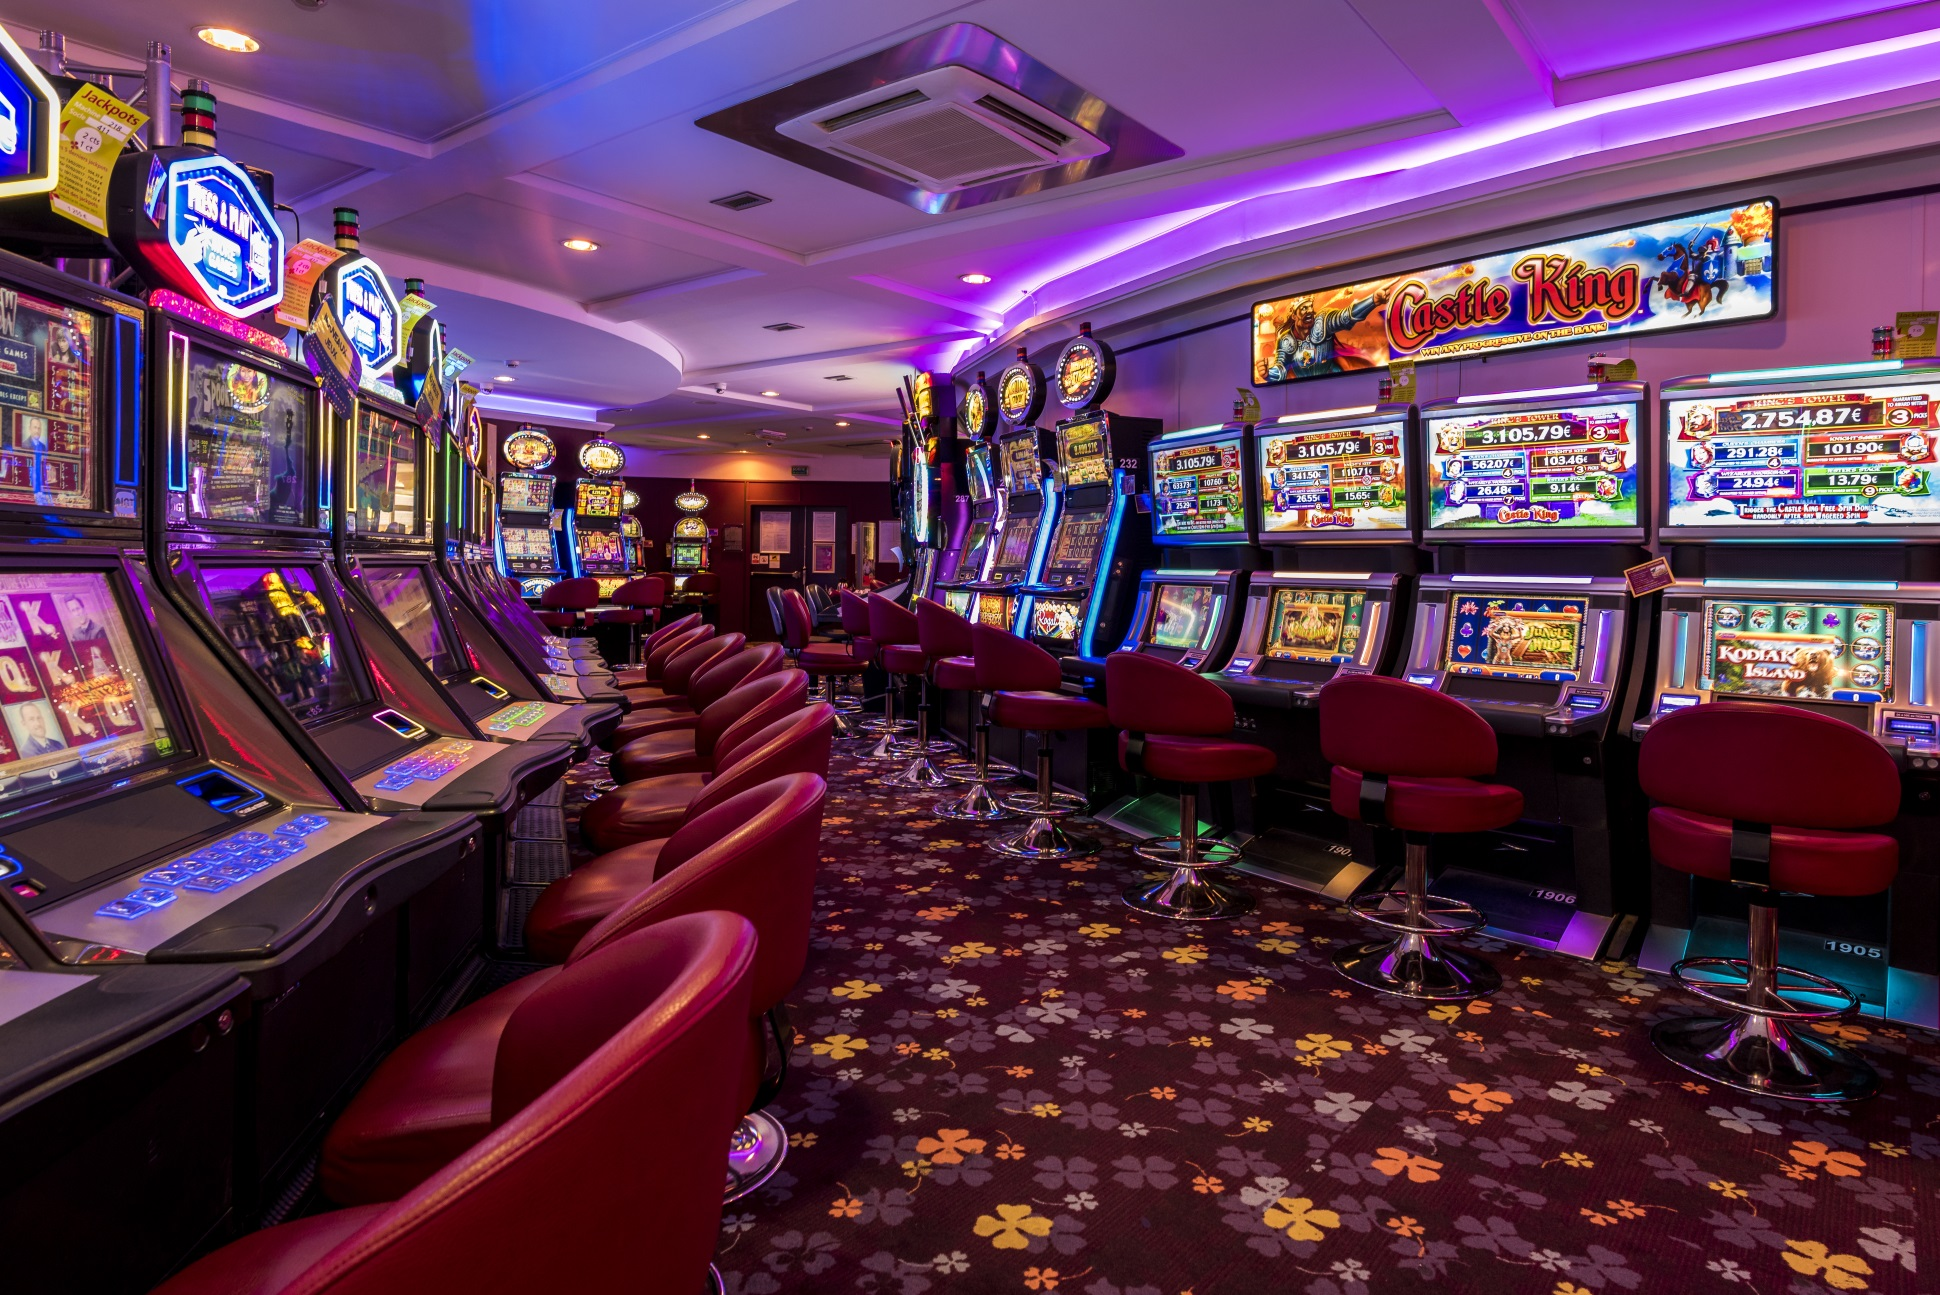 8 Items to Understand Prior to Going into the Casino